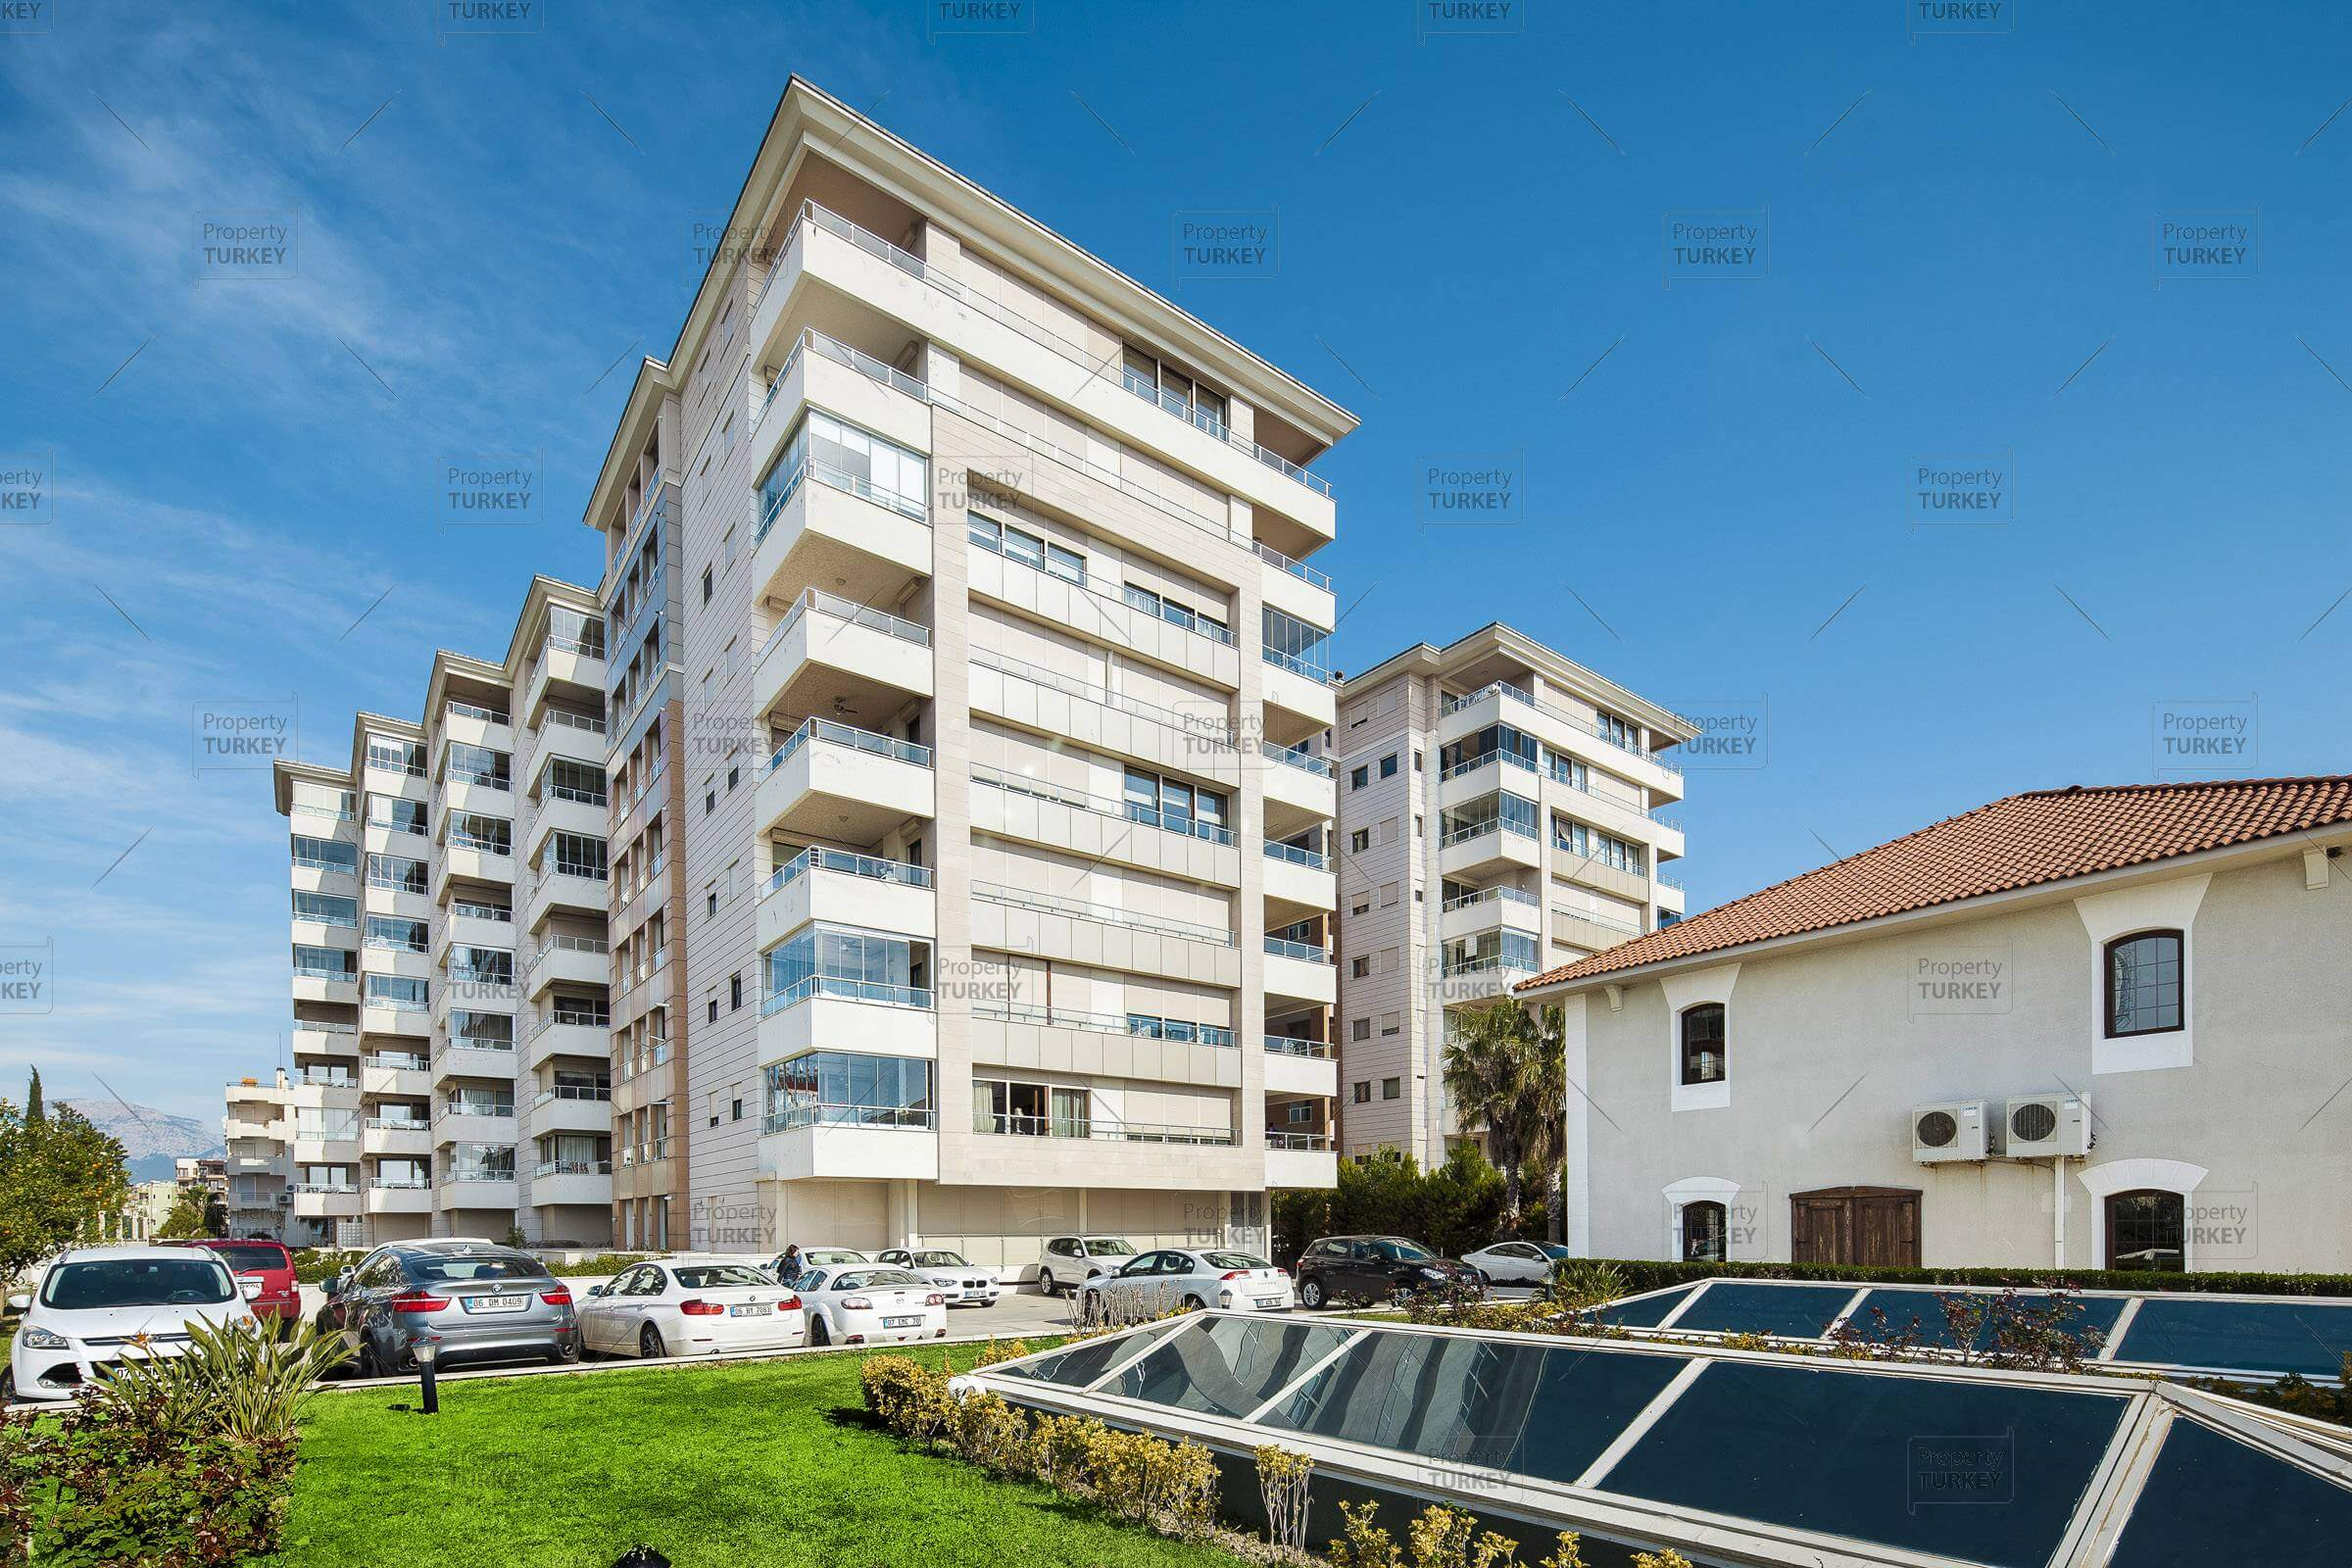 Apartments in Antalya